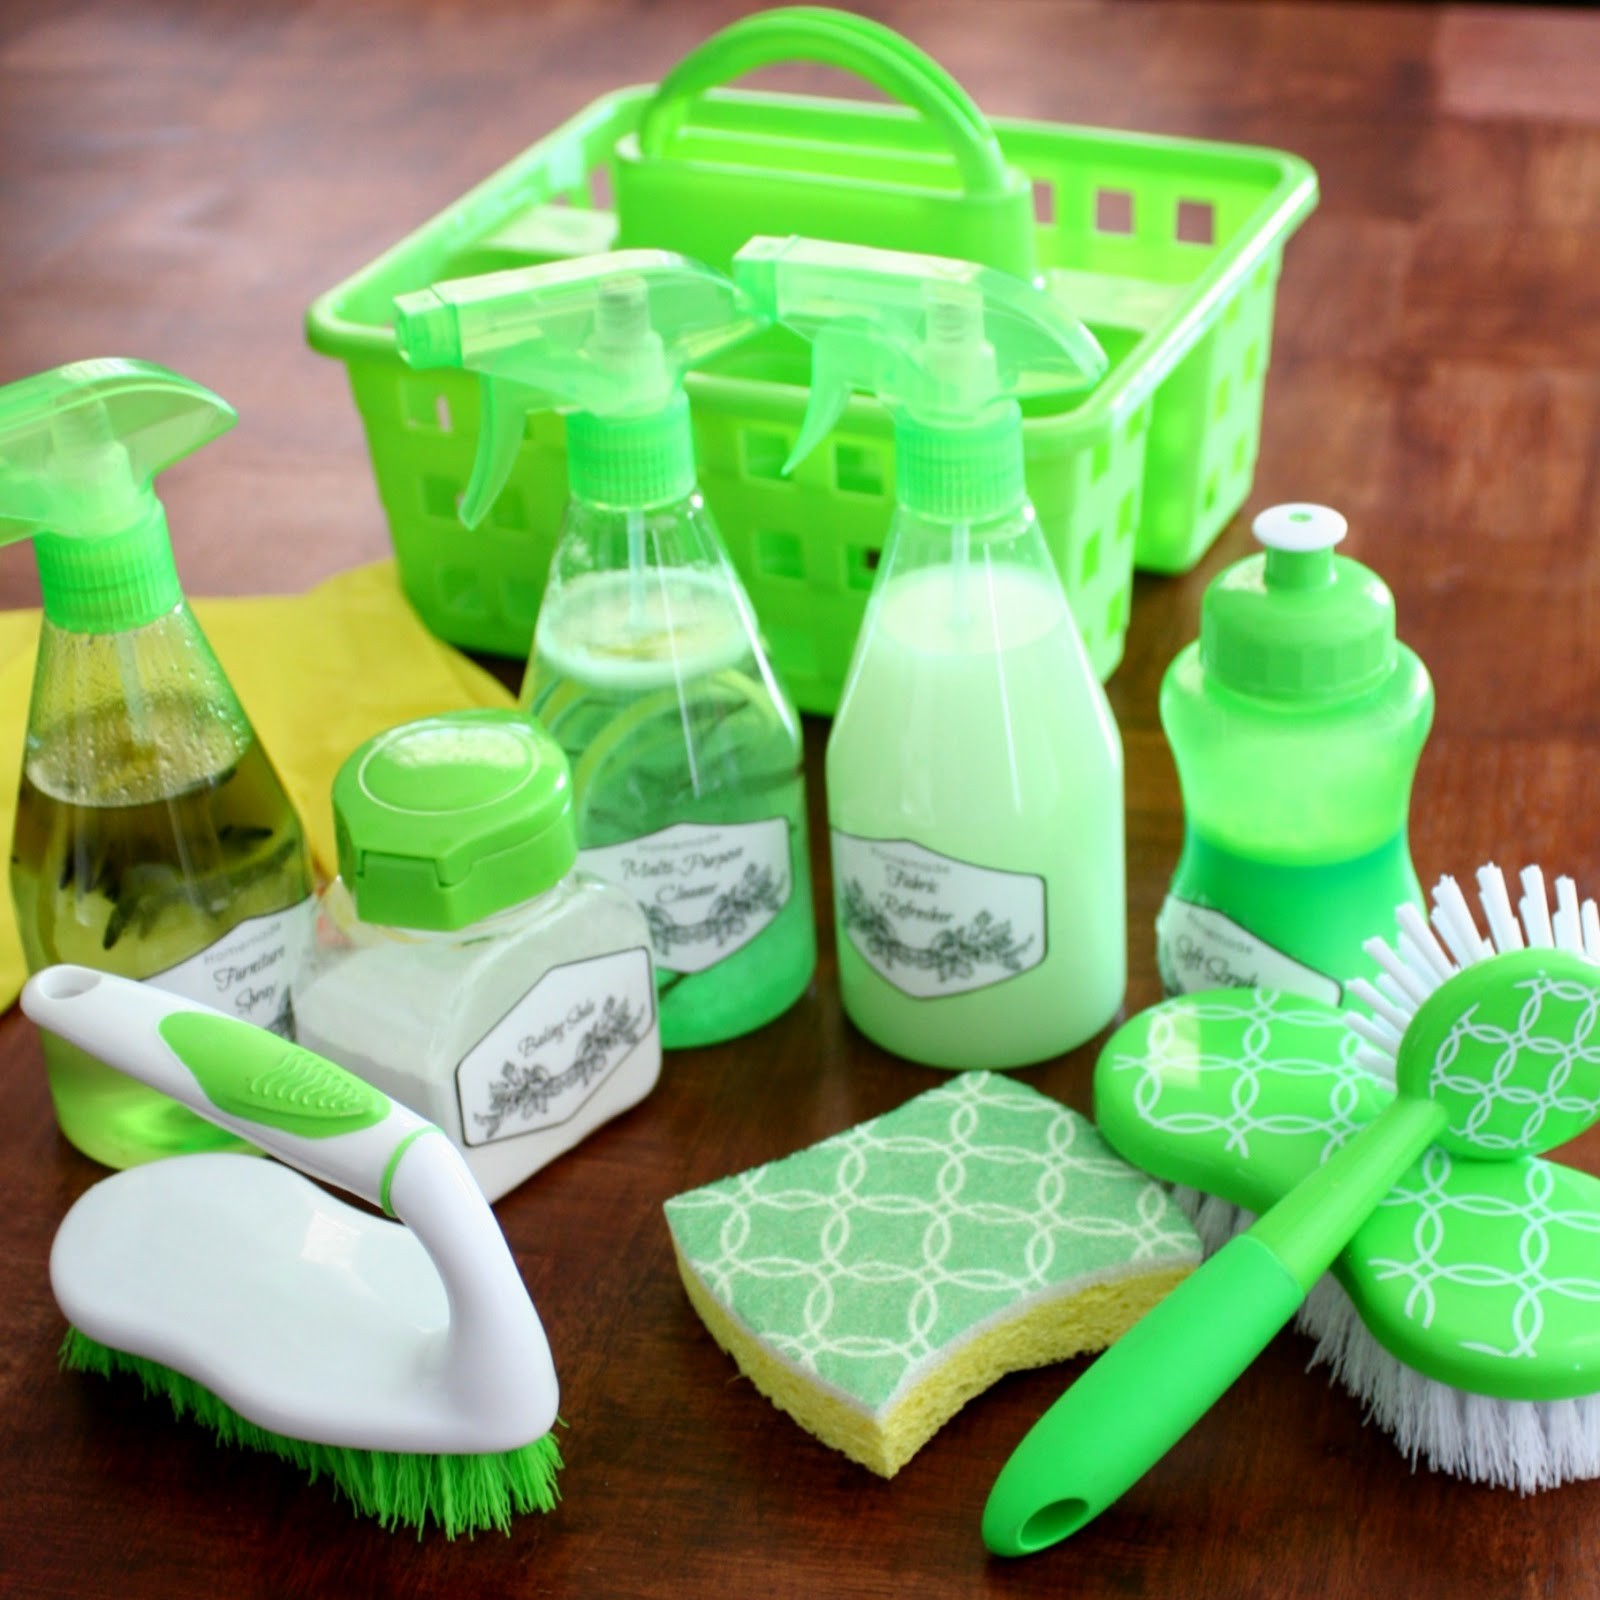 Diy cleaning kit with homemade cleaners jordan 39 s easy entertaining - Home made cleaning products ...